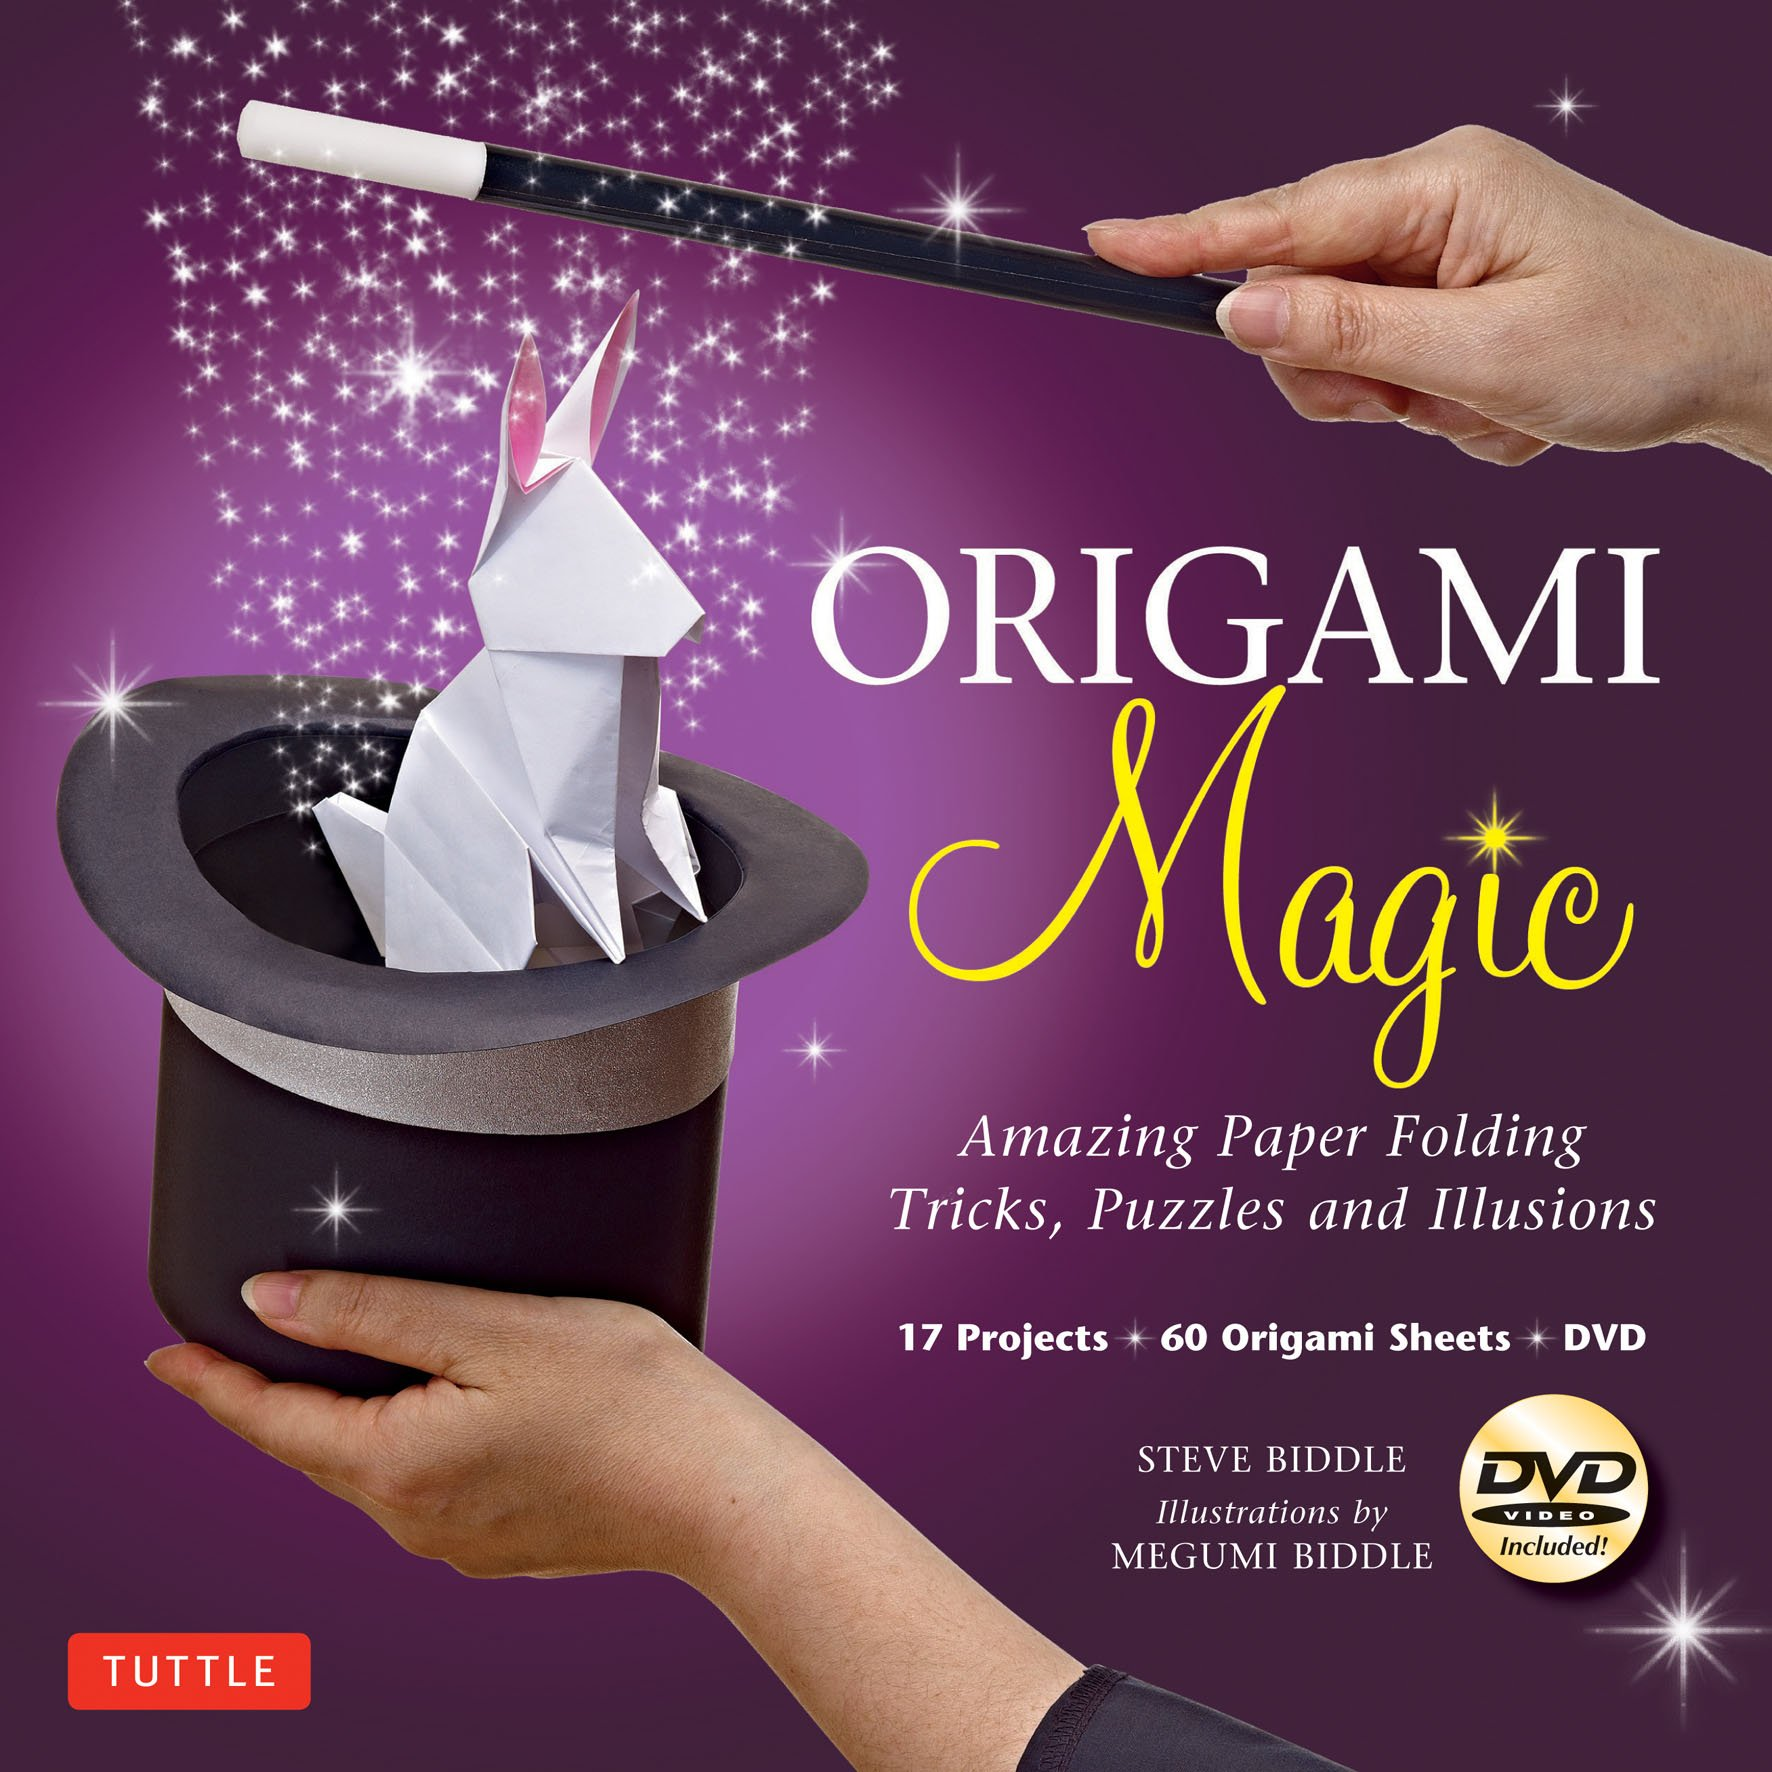 Origami Magic Kit: Amazing Paper Folding Tricks, Puzzles and Illusions: Kit with Origami Book, 17 Projects, 60 Origami Papers and DVD Text fb2 book